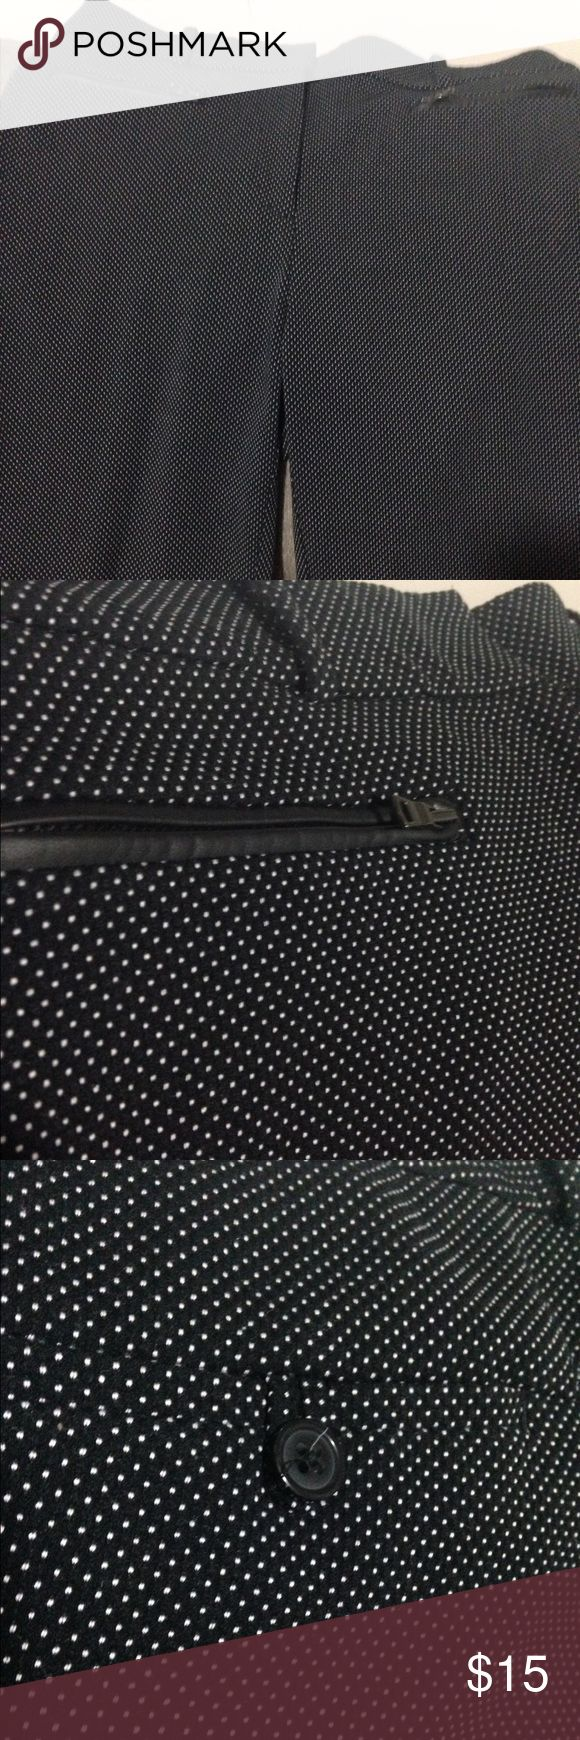 Black and white Crop Pants Ann Taylor curvy fit crop pants. Black with tiny white polka dots, zip pockets in front and button pockets in back. Comes to ankle. Size 10,true to fit. Great condition 👖 Ann Taylor Pants Capris